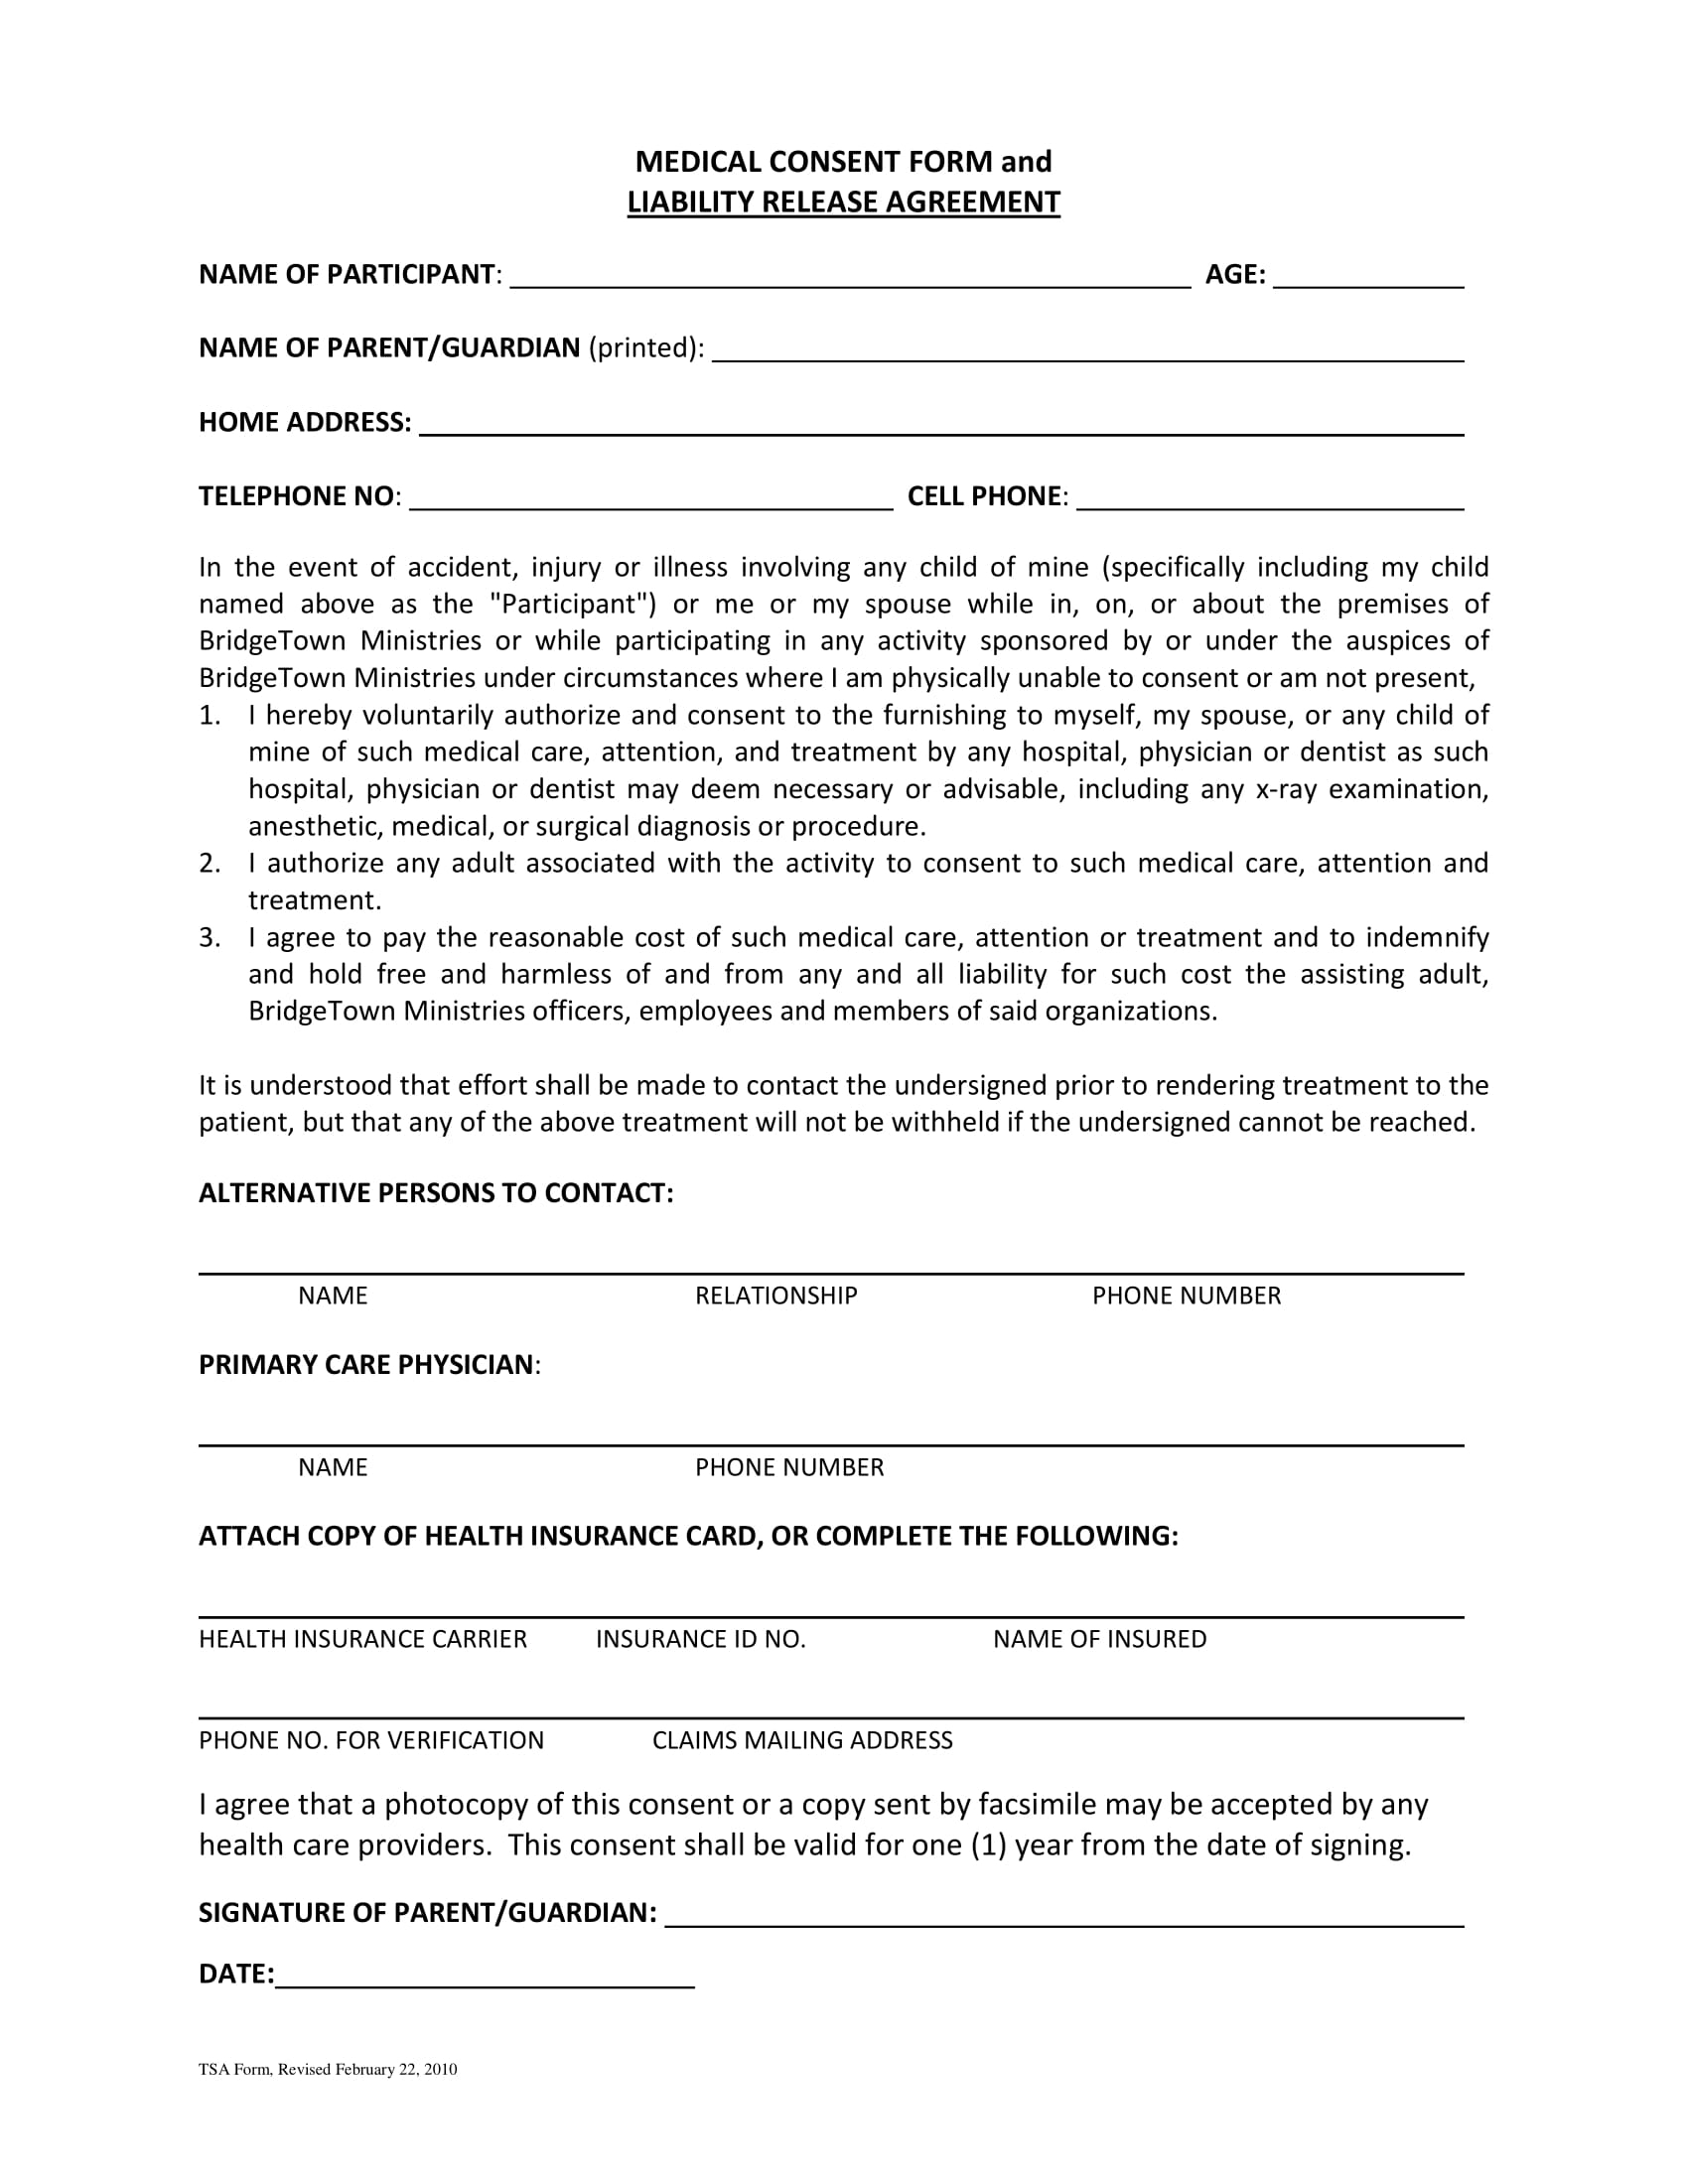 medical consent liability release agreement contract form 1